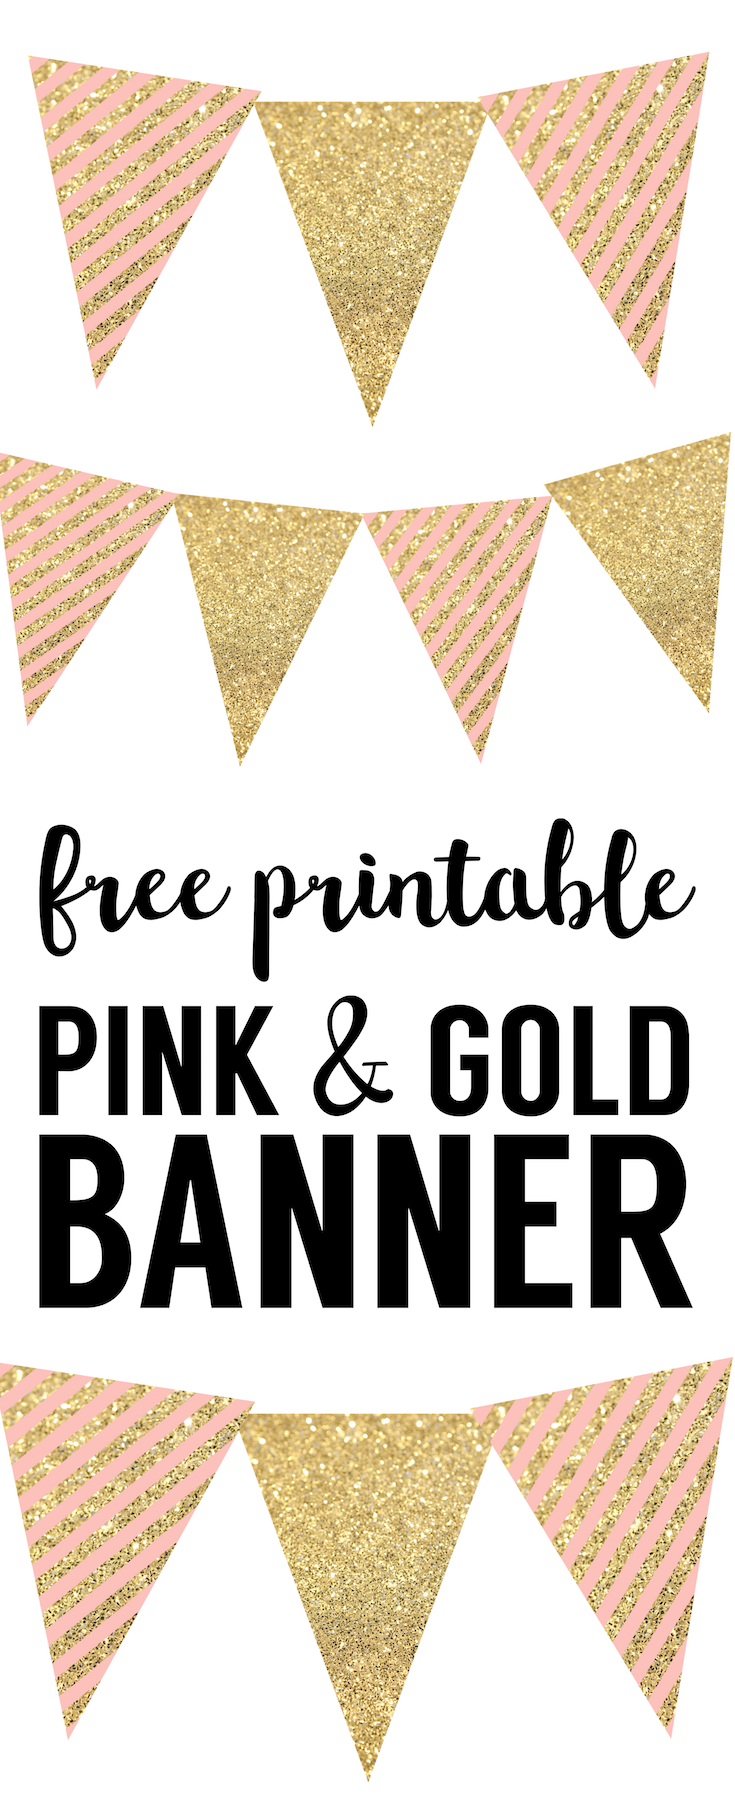 Pink and Gold Banner Free Printable: Print this banner for your 1st birthday, baby shower, birthday party, or bridal shower or wedding. Easy DIY decorations for a pink and gold party.